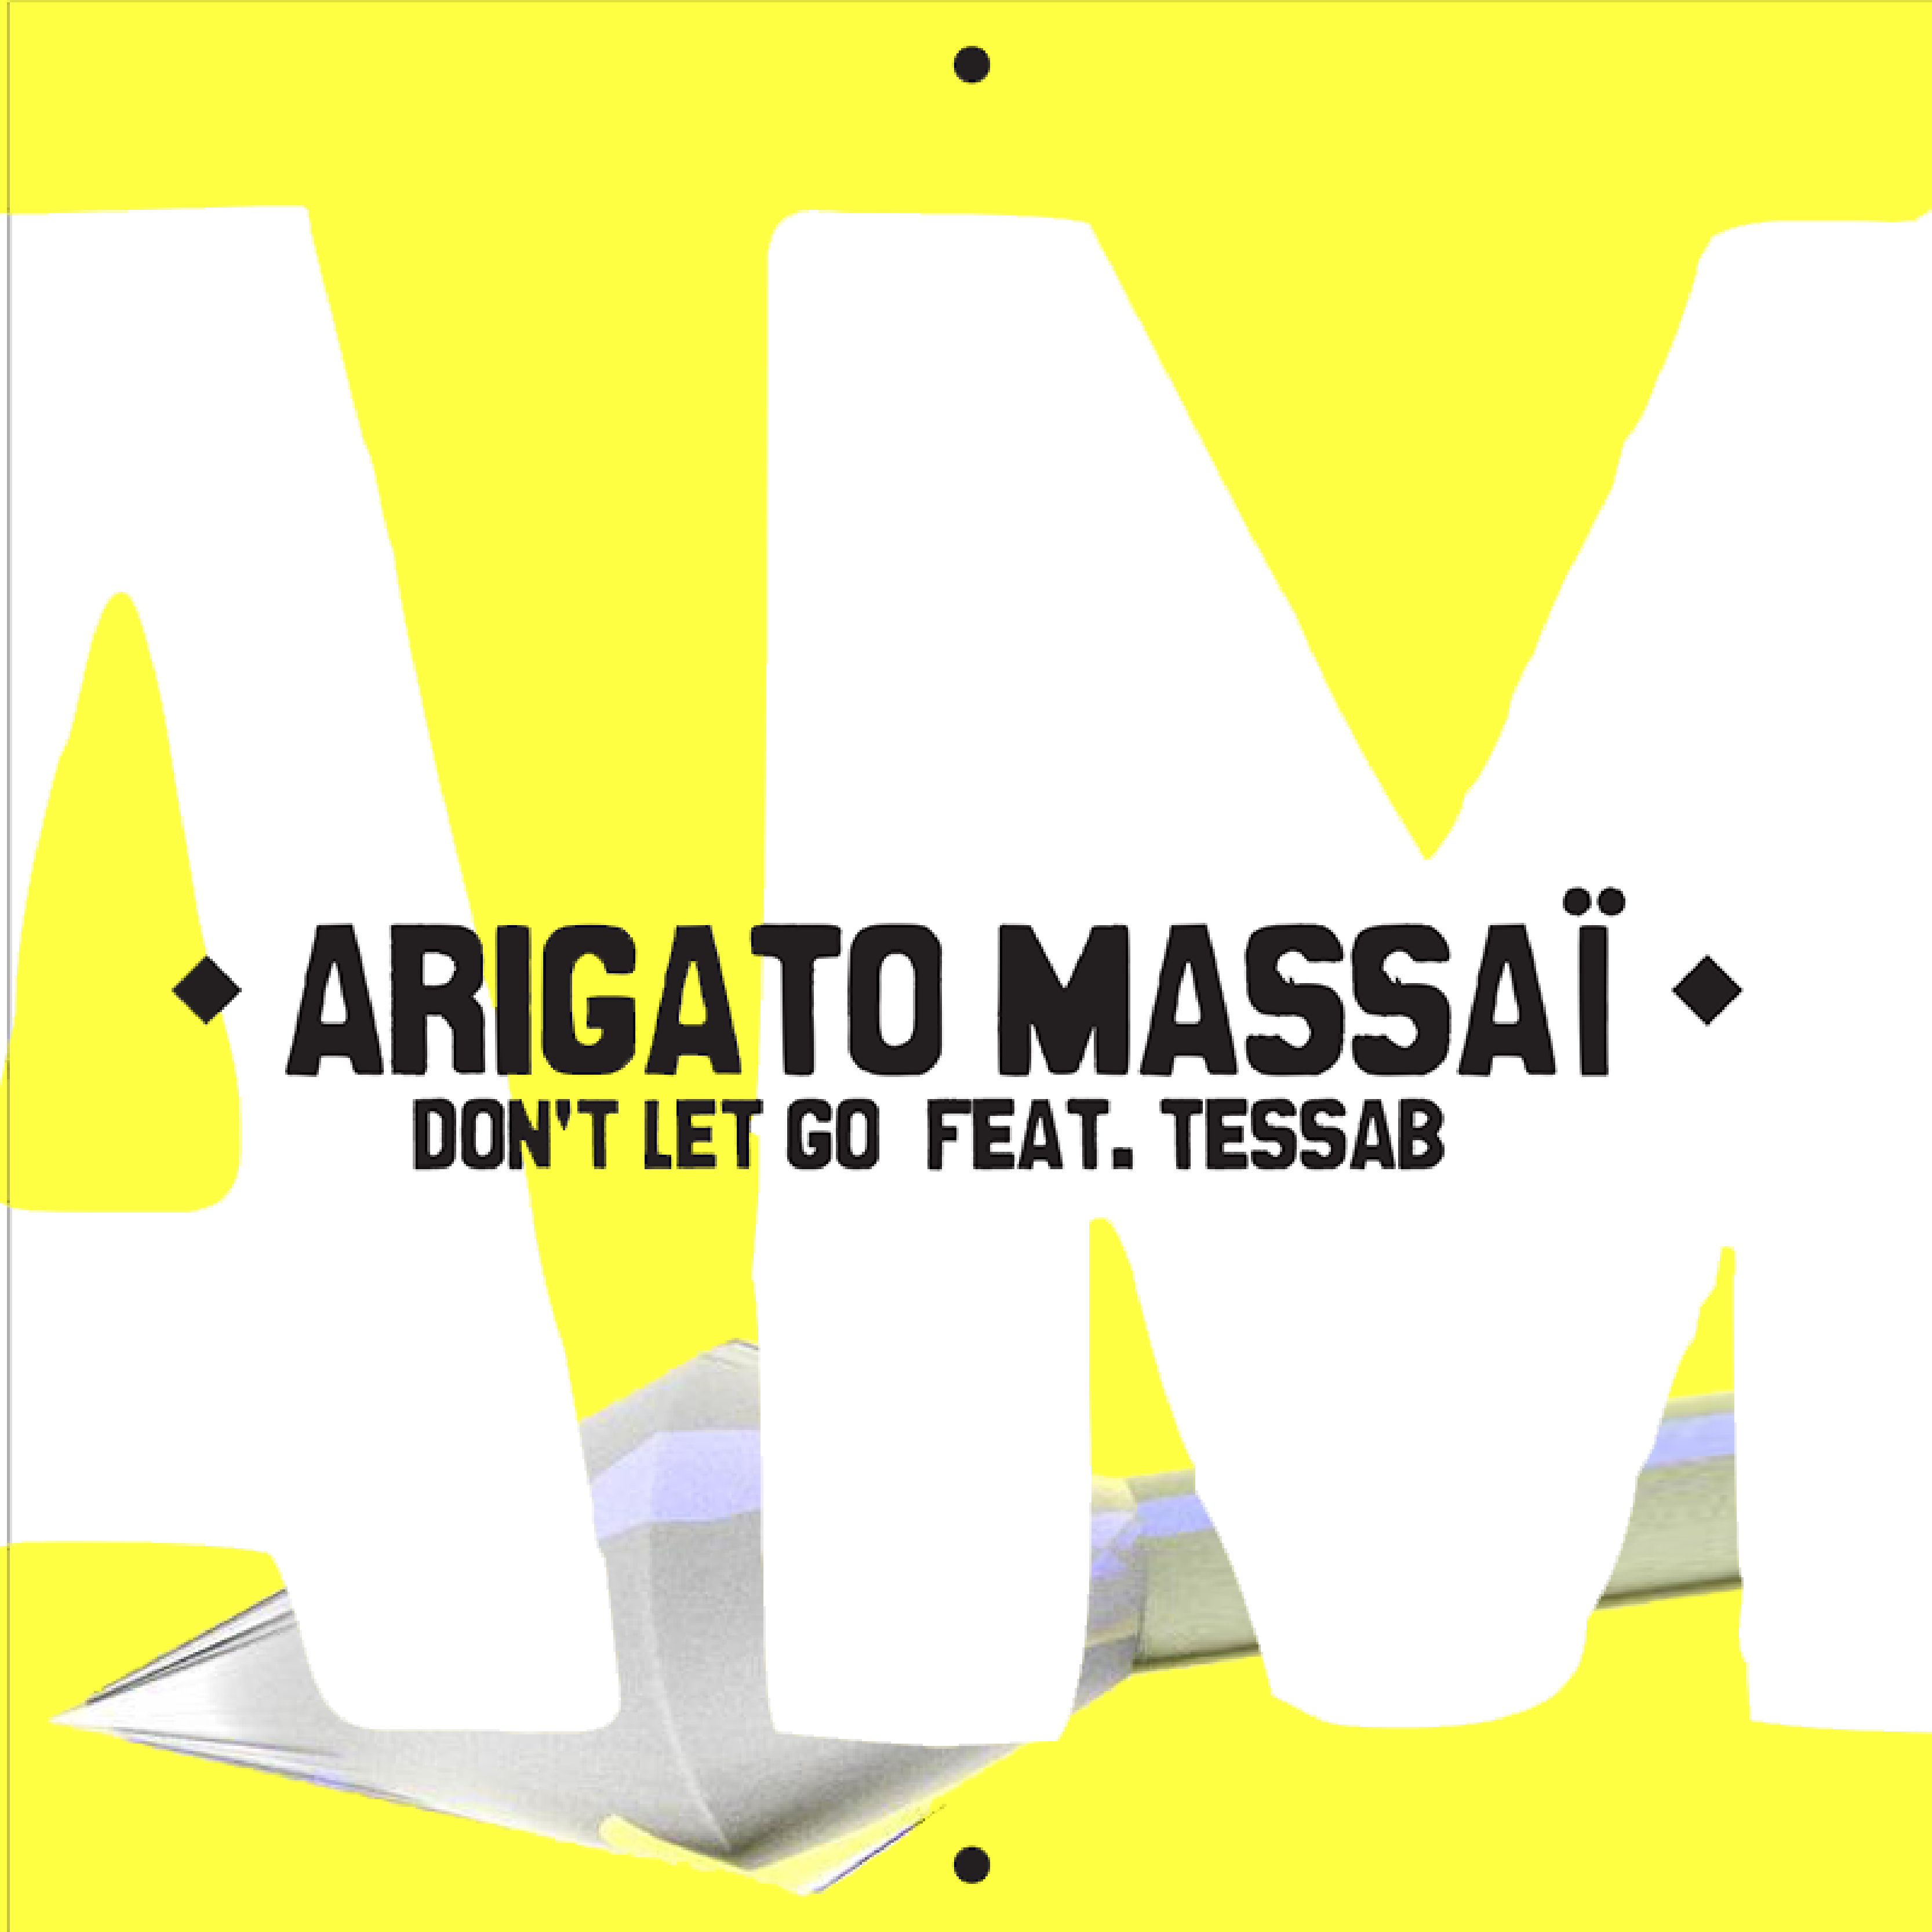 pochette-single-arigato-massai-tessab-don-t-let-go